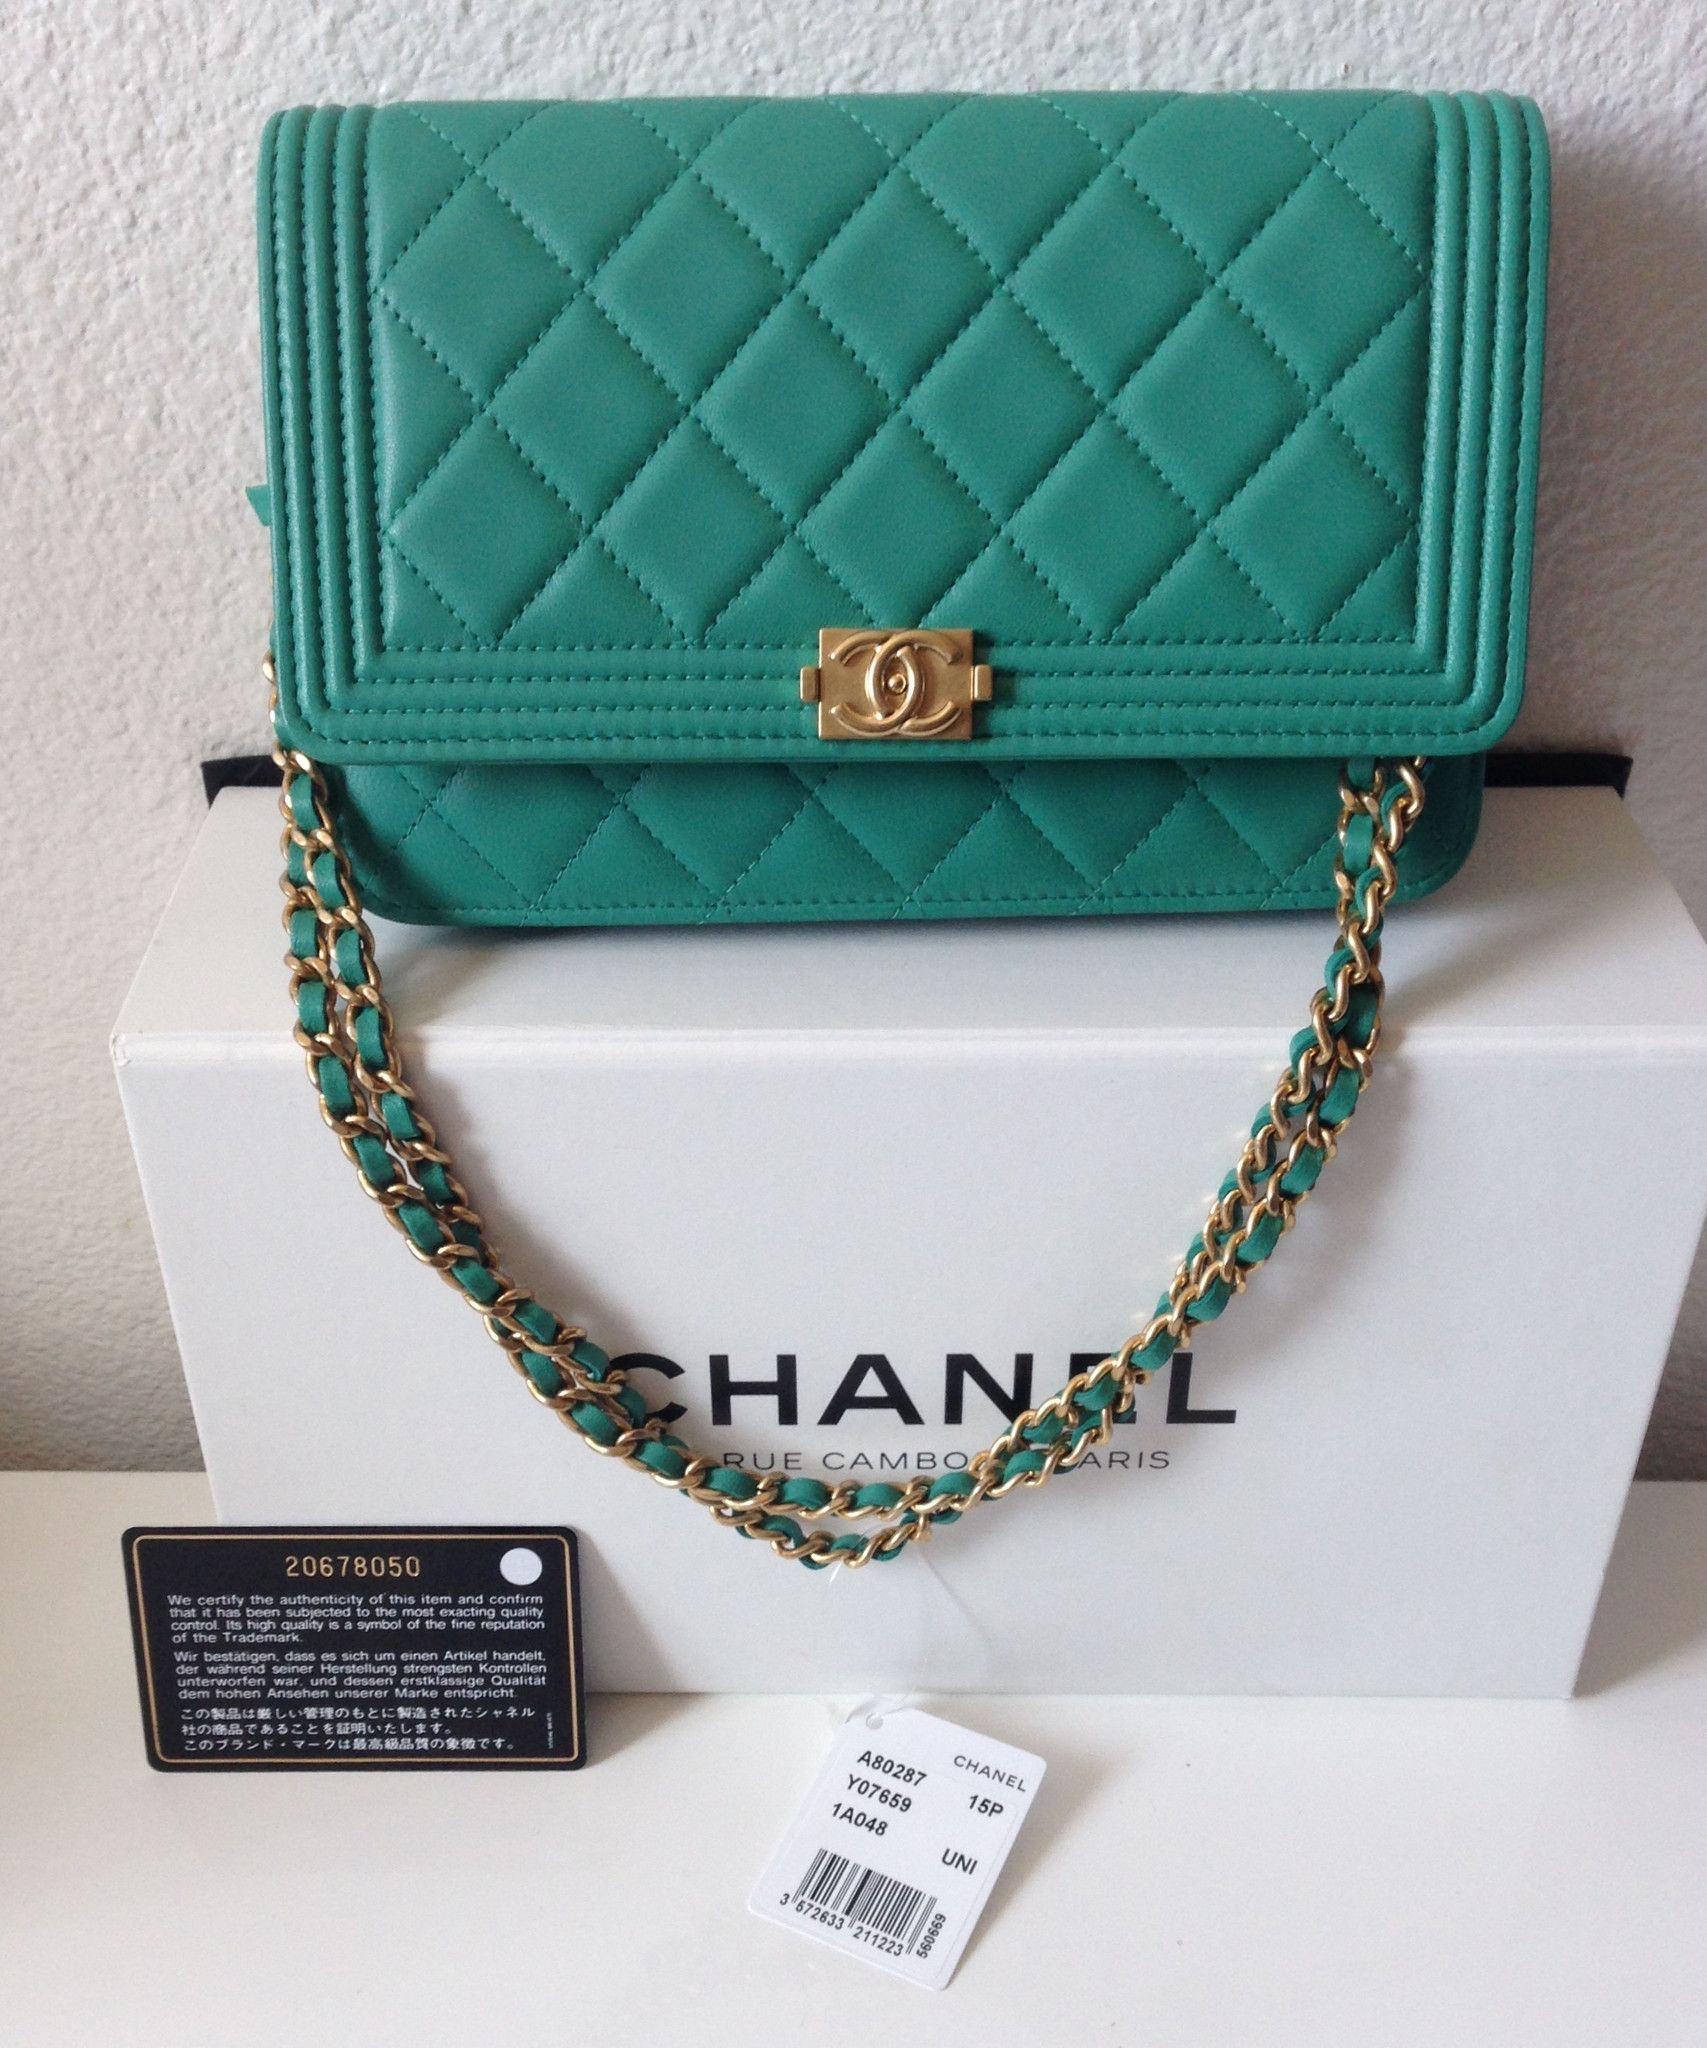 962674e2447207 NEW-Chanel Boy Woc Wallet on Chain Ghw Clutch Flap Mint Green Cross Body Bag